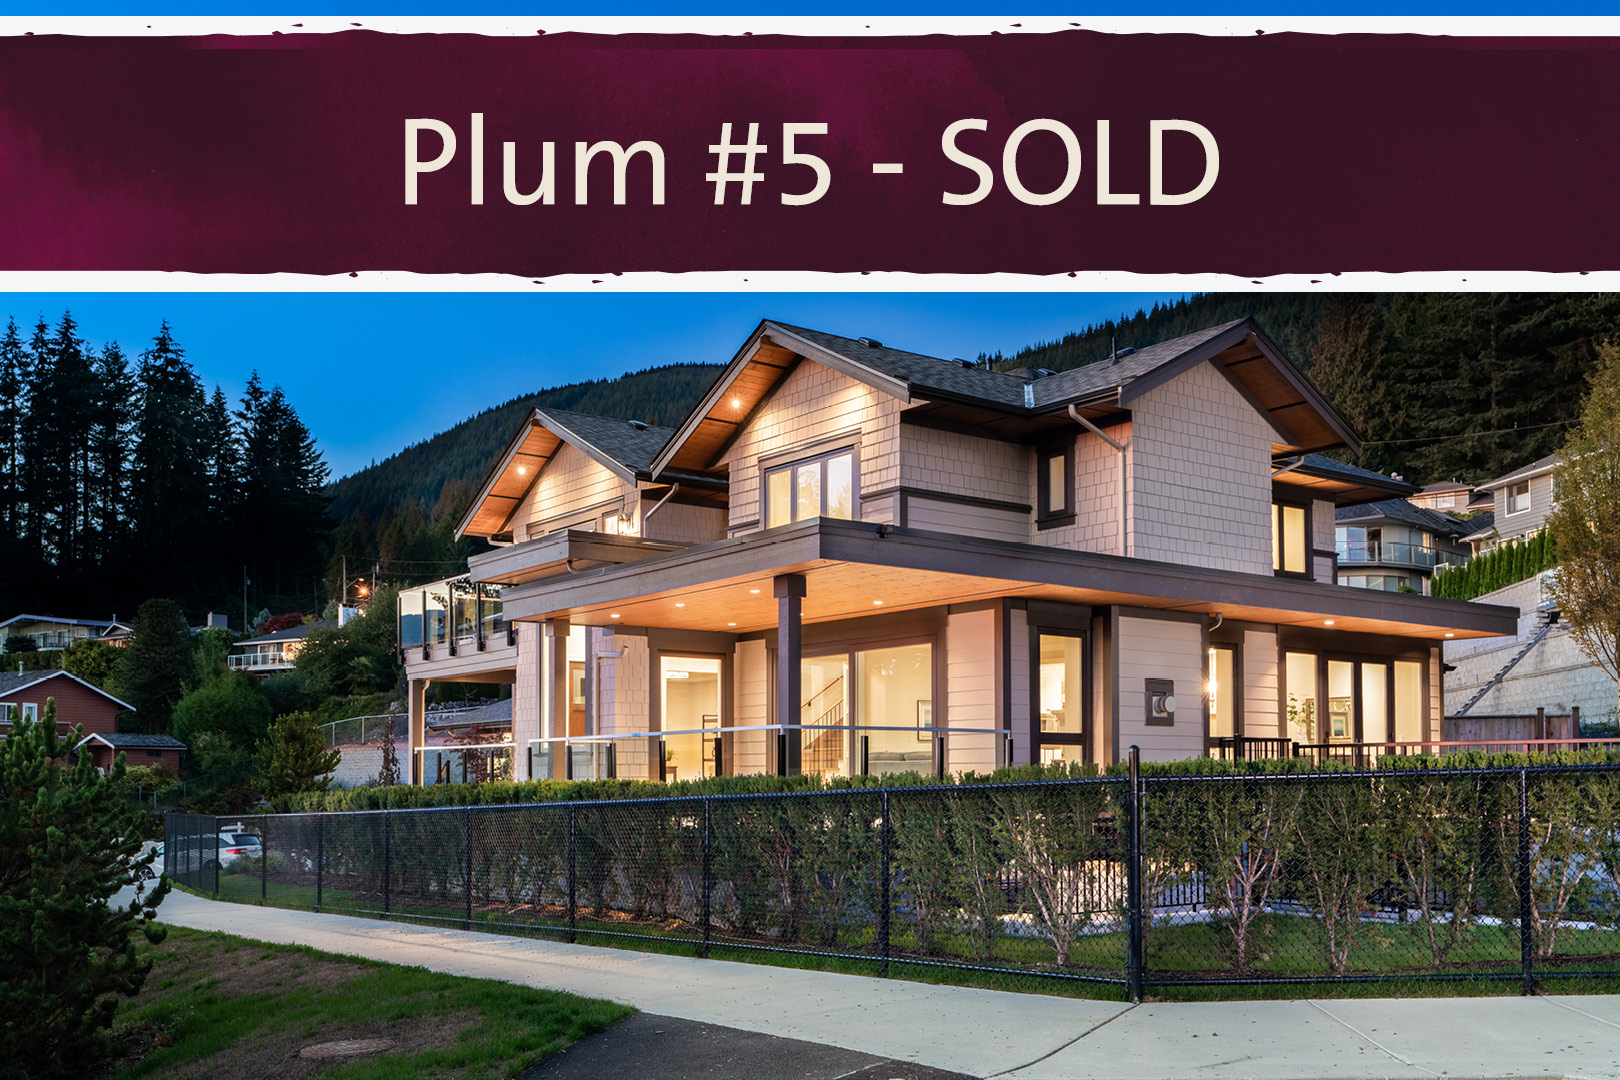 10 Plums Sold Homes version 2.jpg